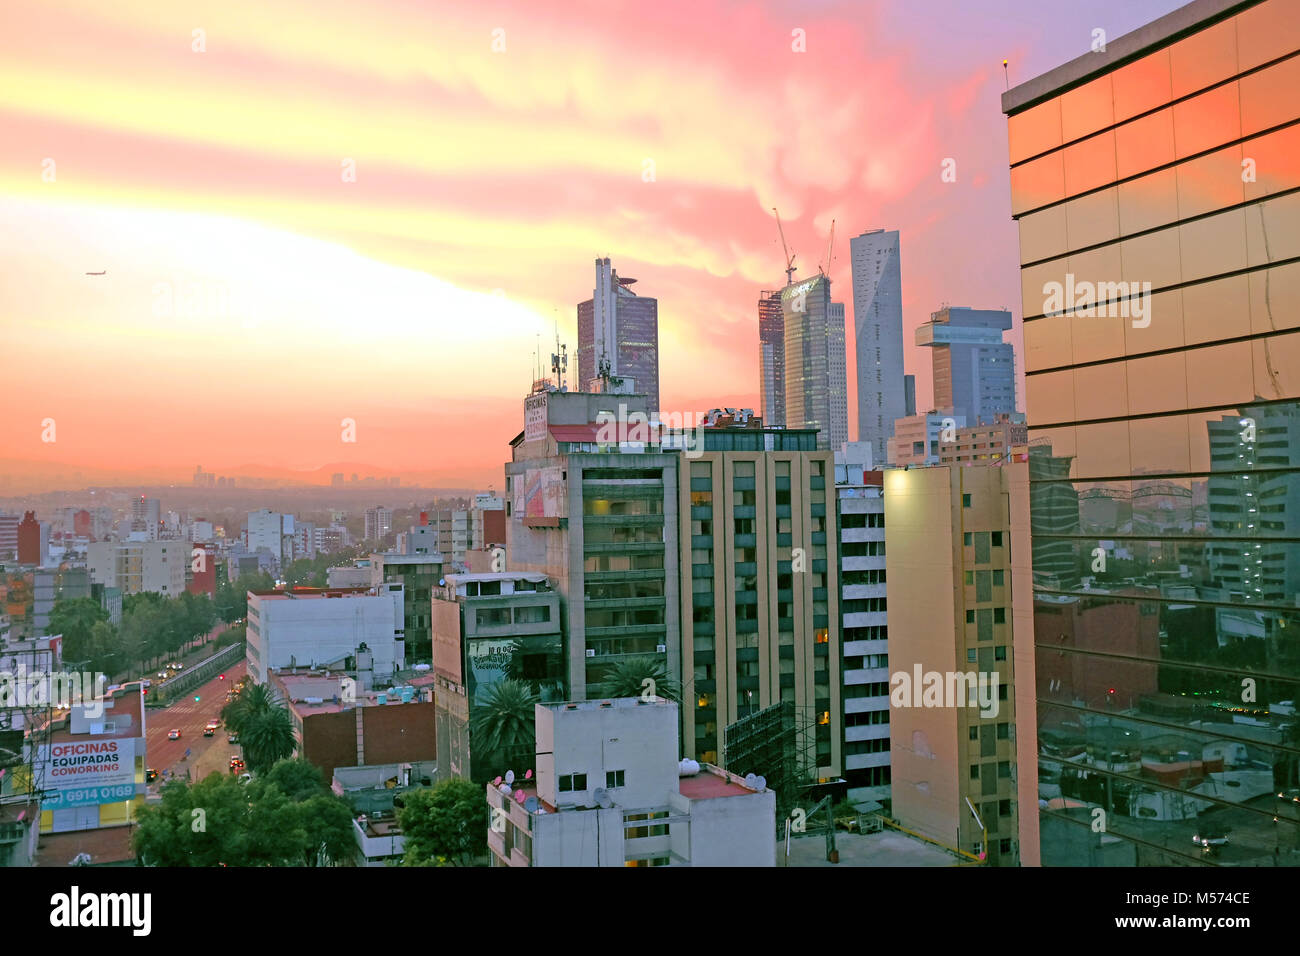 Sunset from the Zona Rosa neighborhood in Mexico City, Mexico - Stock Image